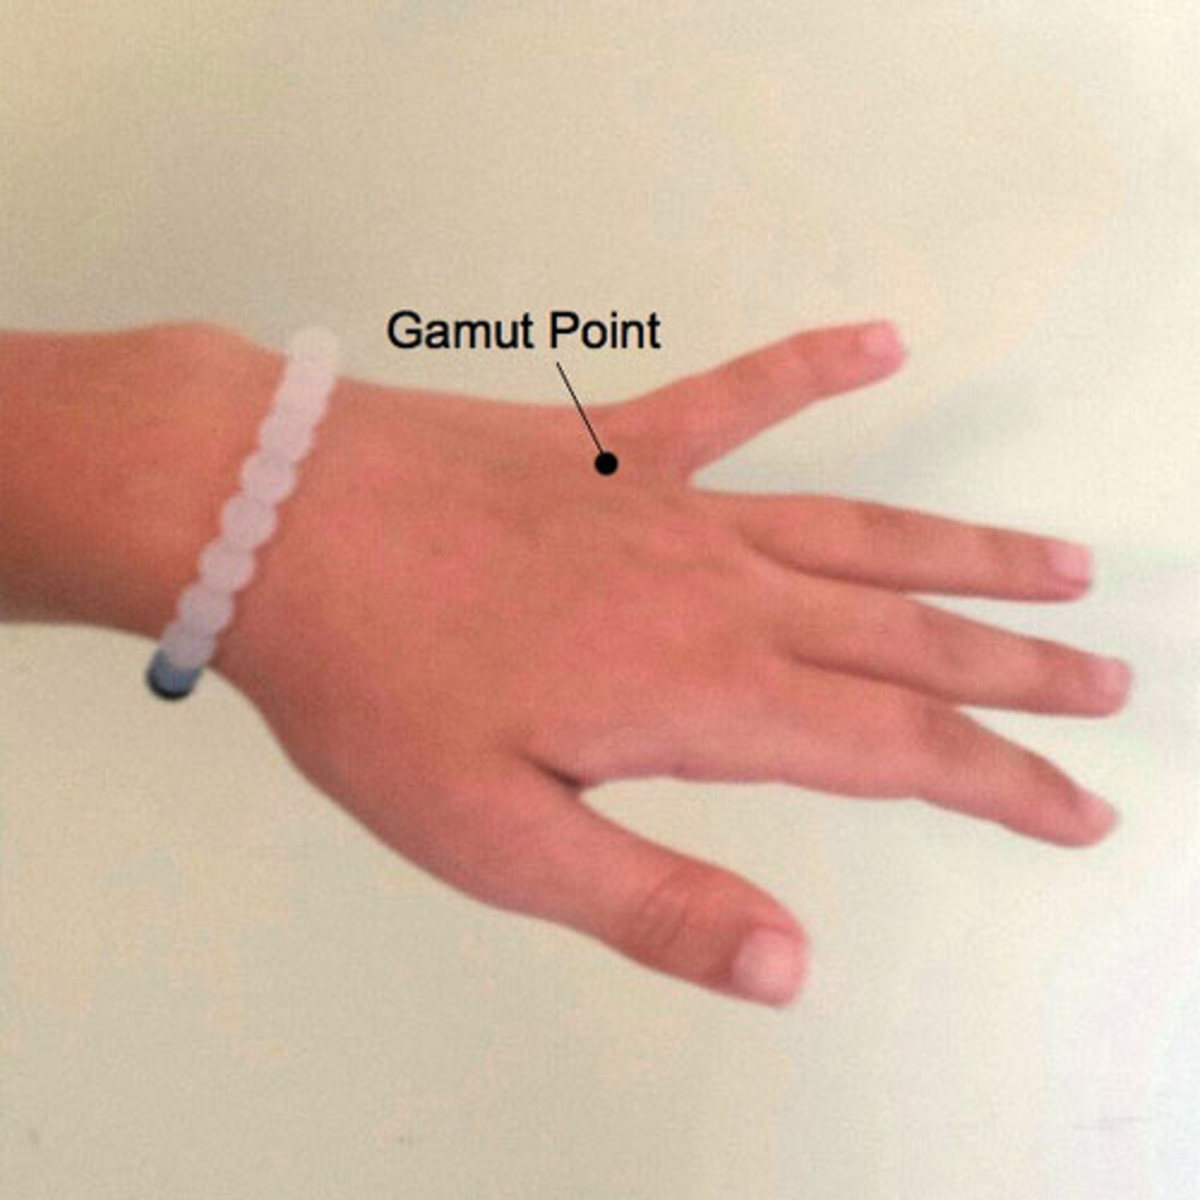 Gamut Point Releases Stress